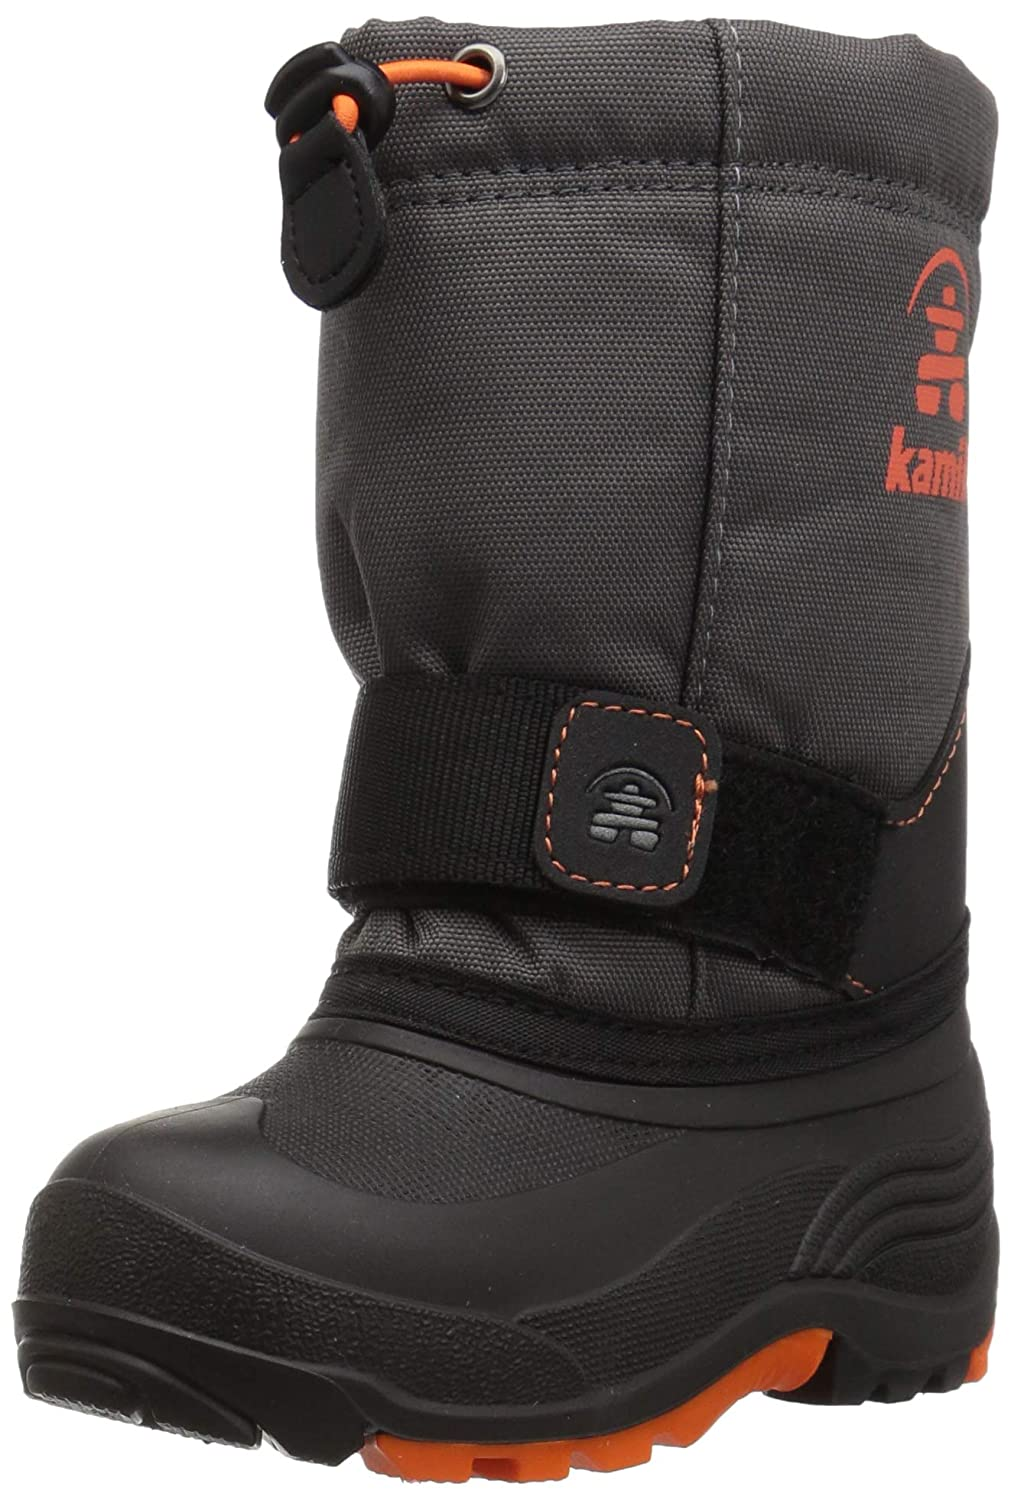 Kamik Kids' Rocket Snow Boot -